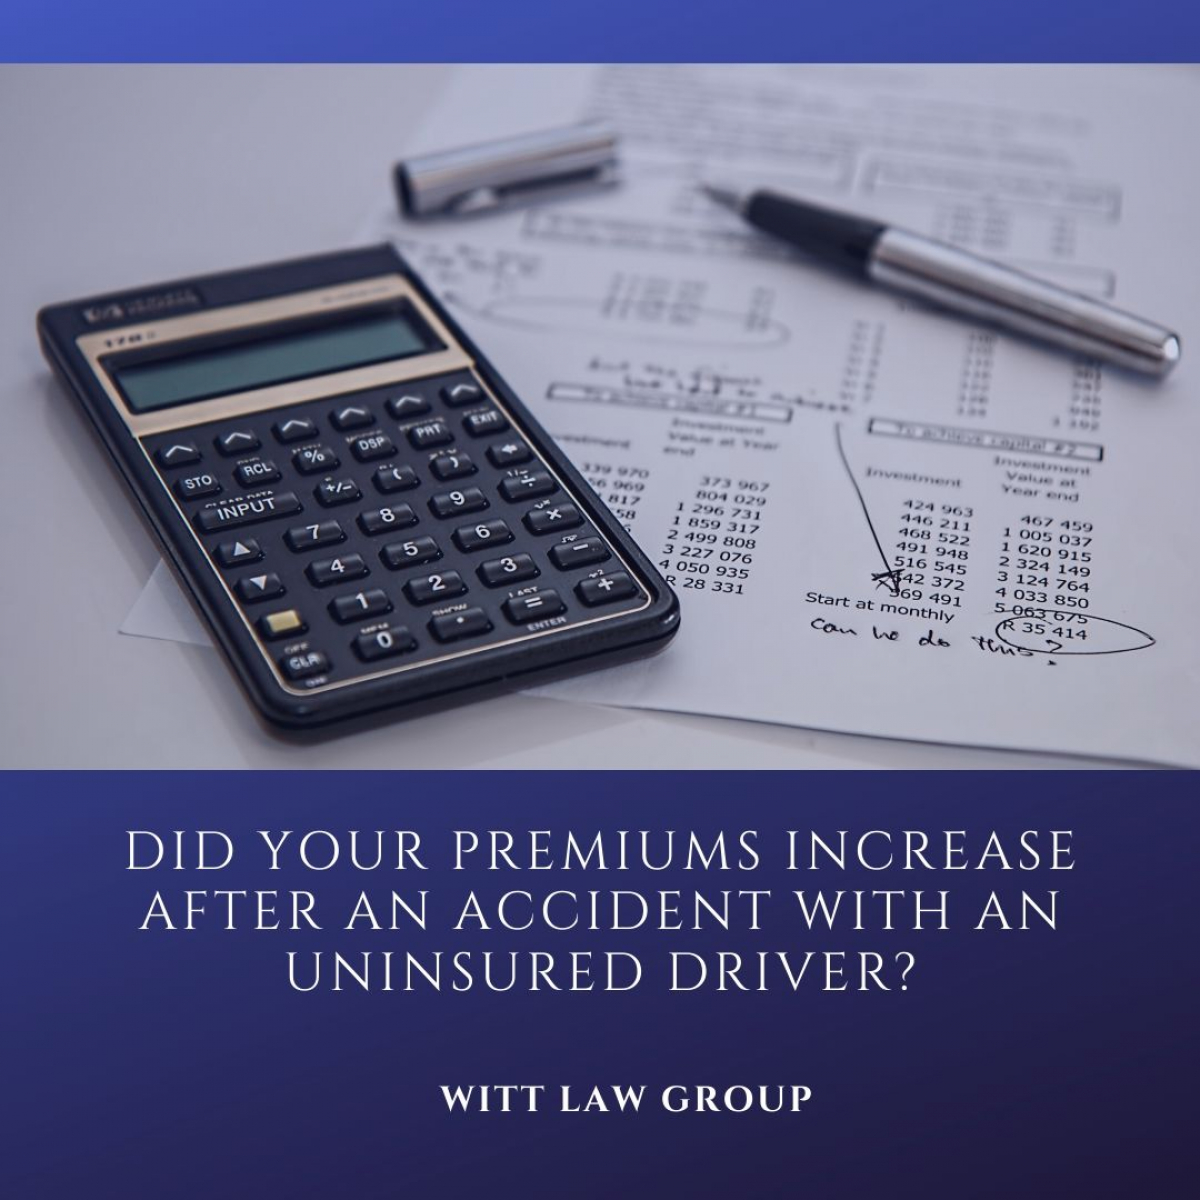 Insurance Premiums and Auto Accident